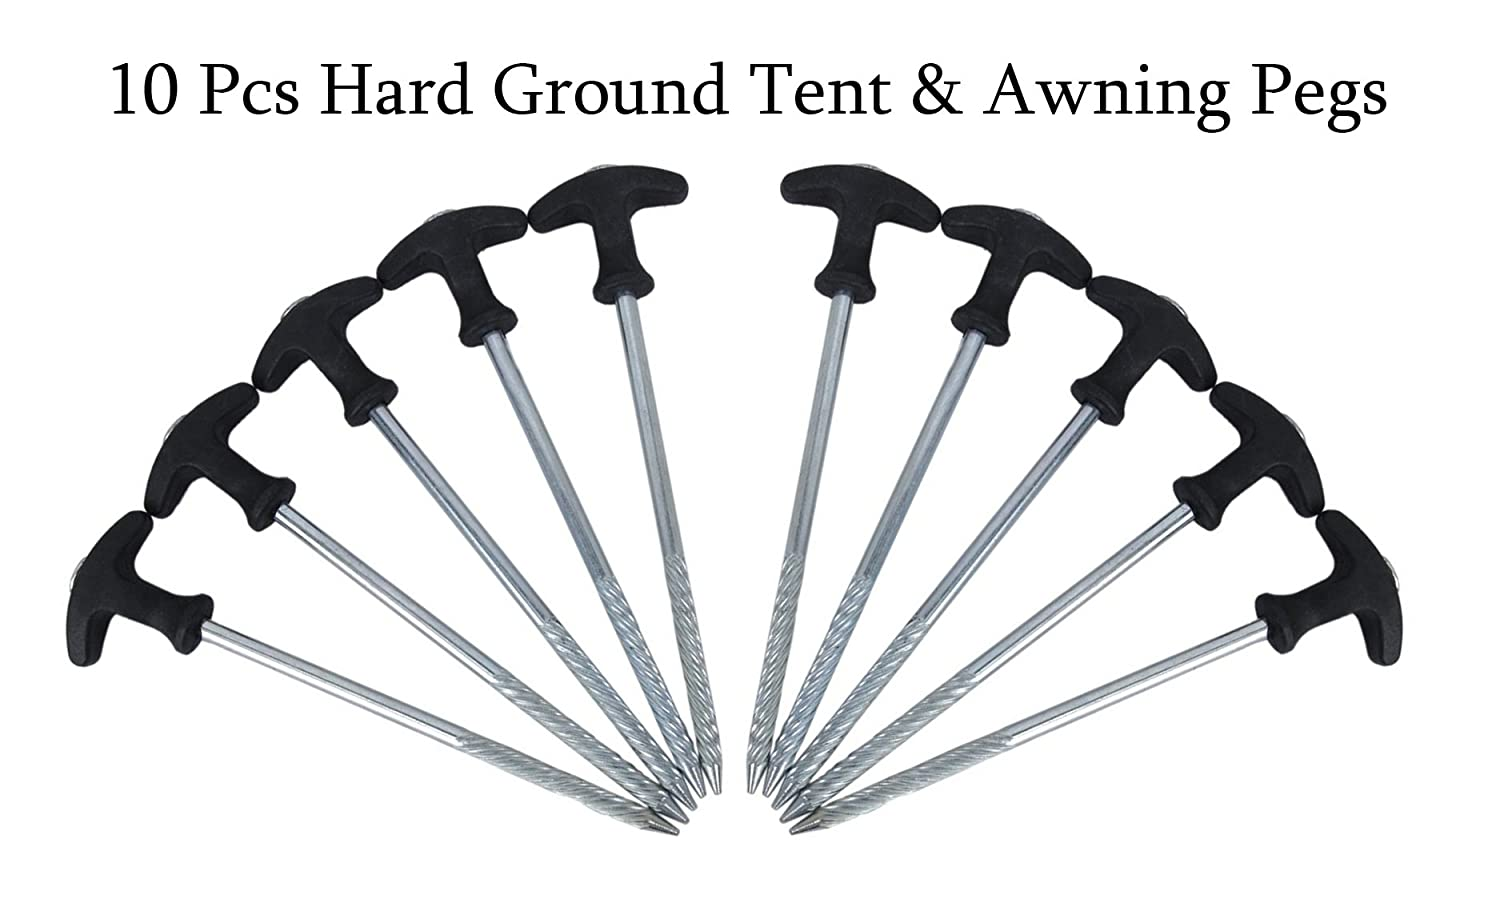 10x Hard Standing Ground Drill Screw In Tent Pegs - Caravan C&ing Tent Awning Amazon.co.uk Sports u0026 Outdoors  sc 1 st  Amazon UK & 10x Hard Standing Ground Drill Screw In Tent Pegs - Caravan ...